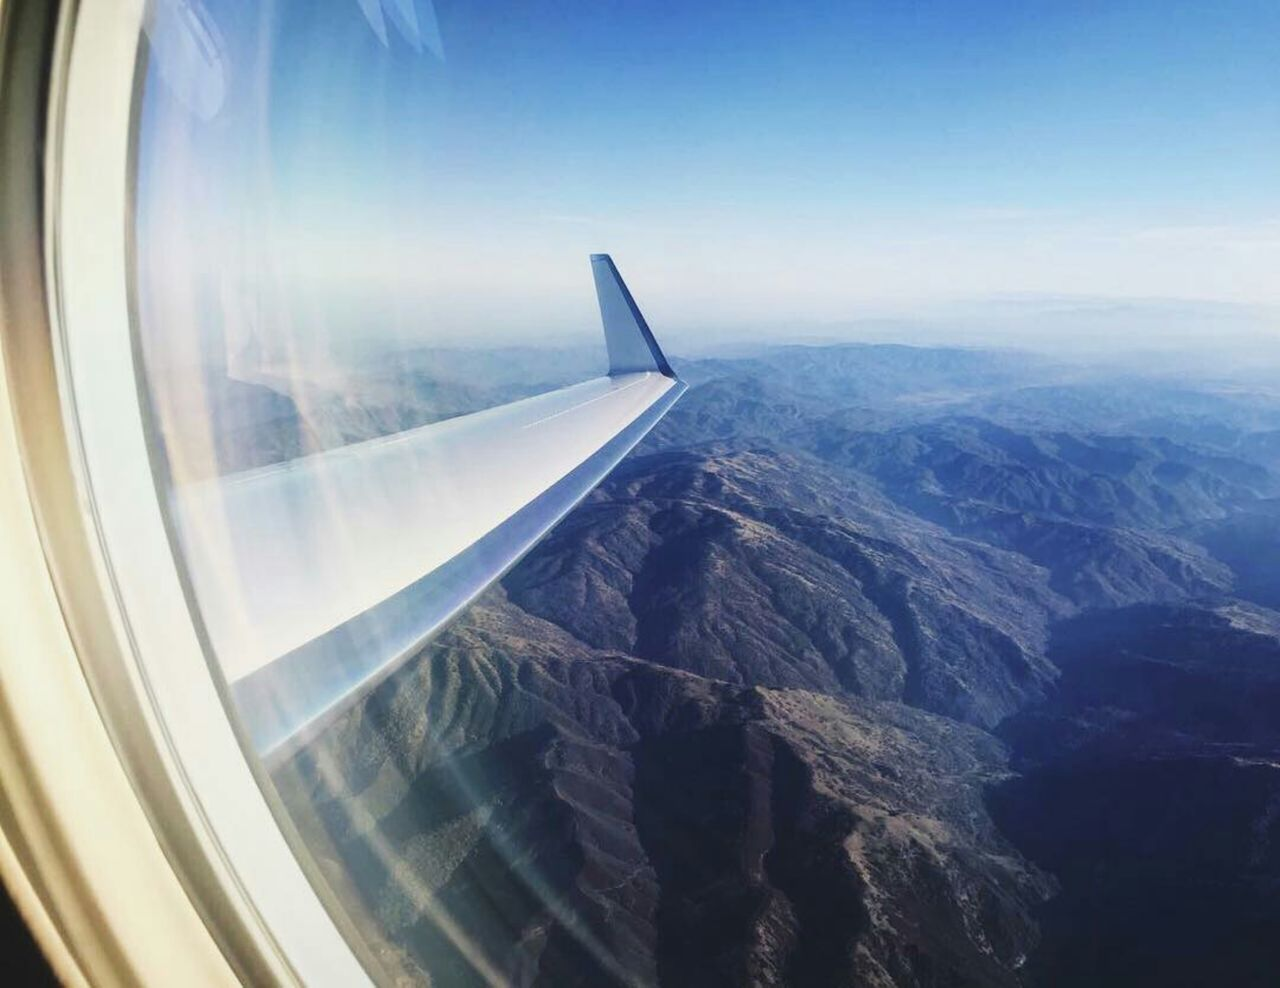 Aerial View Of Landscape Seen Through Airplane Window